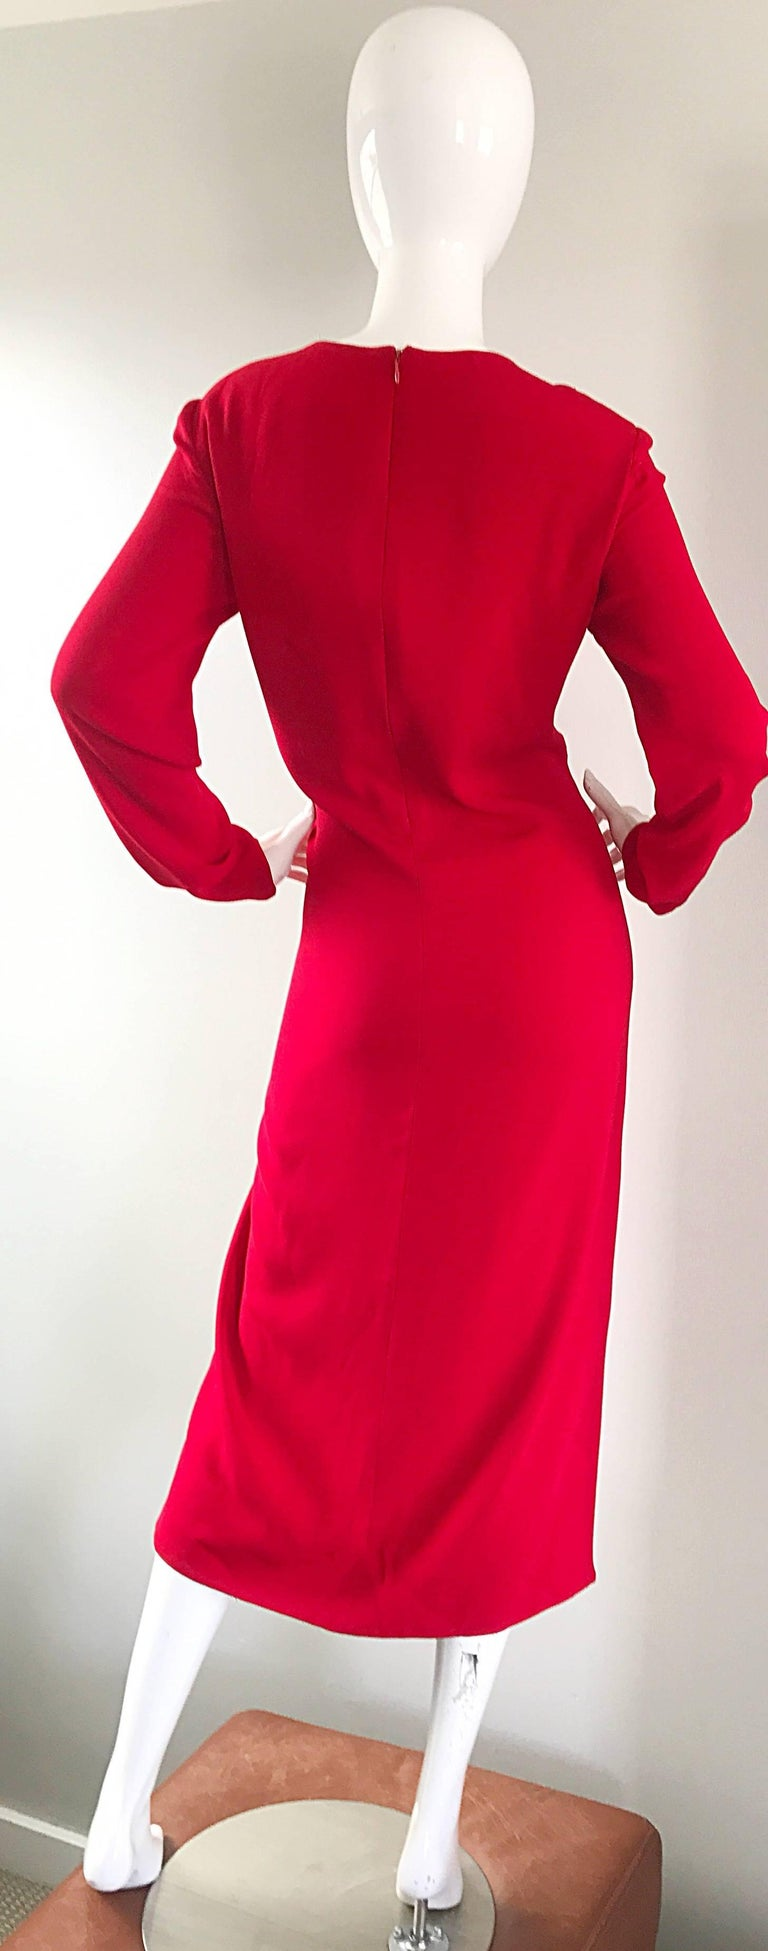 1990s Badgley Mischka Size 10 / 12 Lipstick Red Long Sleeve 90s Evening Dress 8